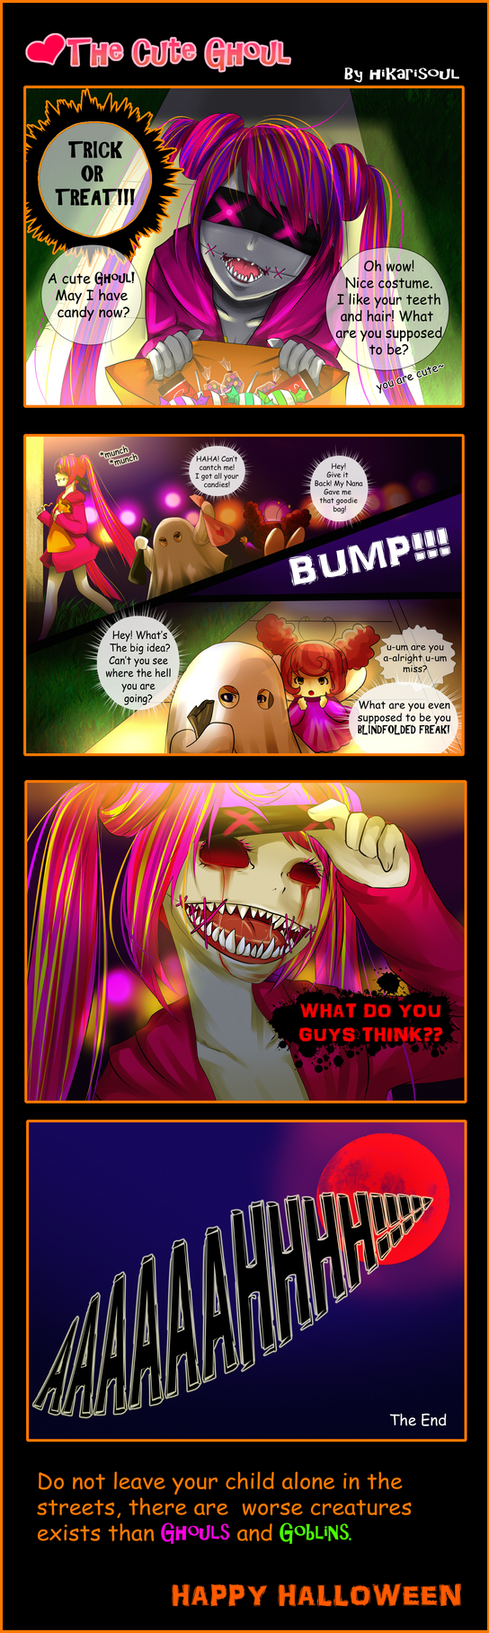 BE-LATED HALLOWEEN: THE CUTE GHOUL by Hikarisoul2